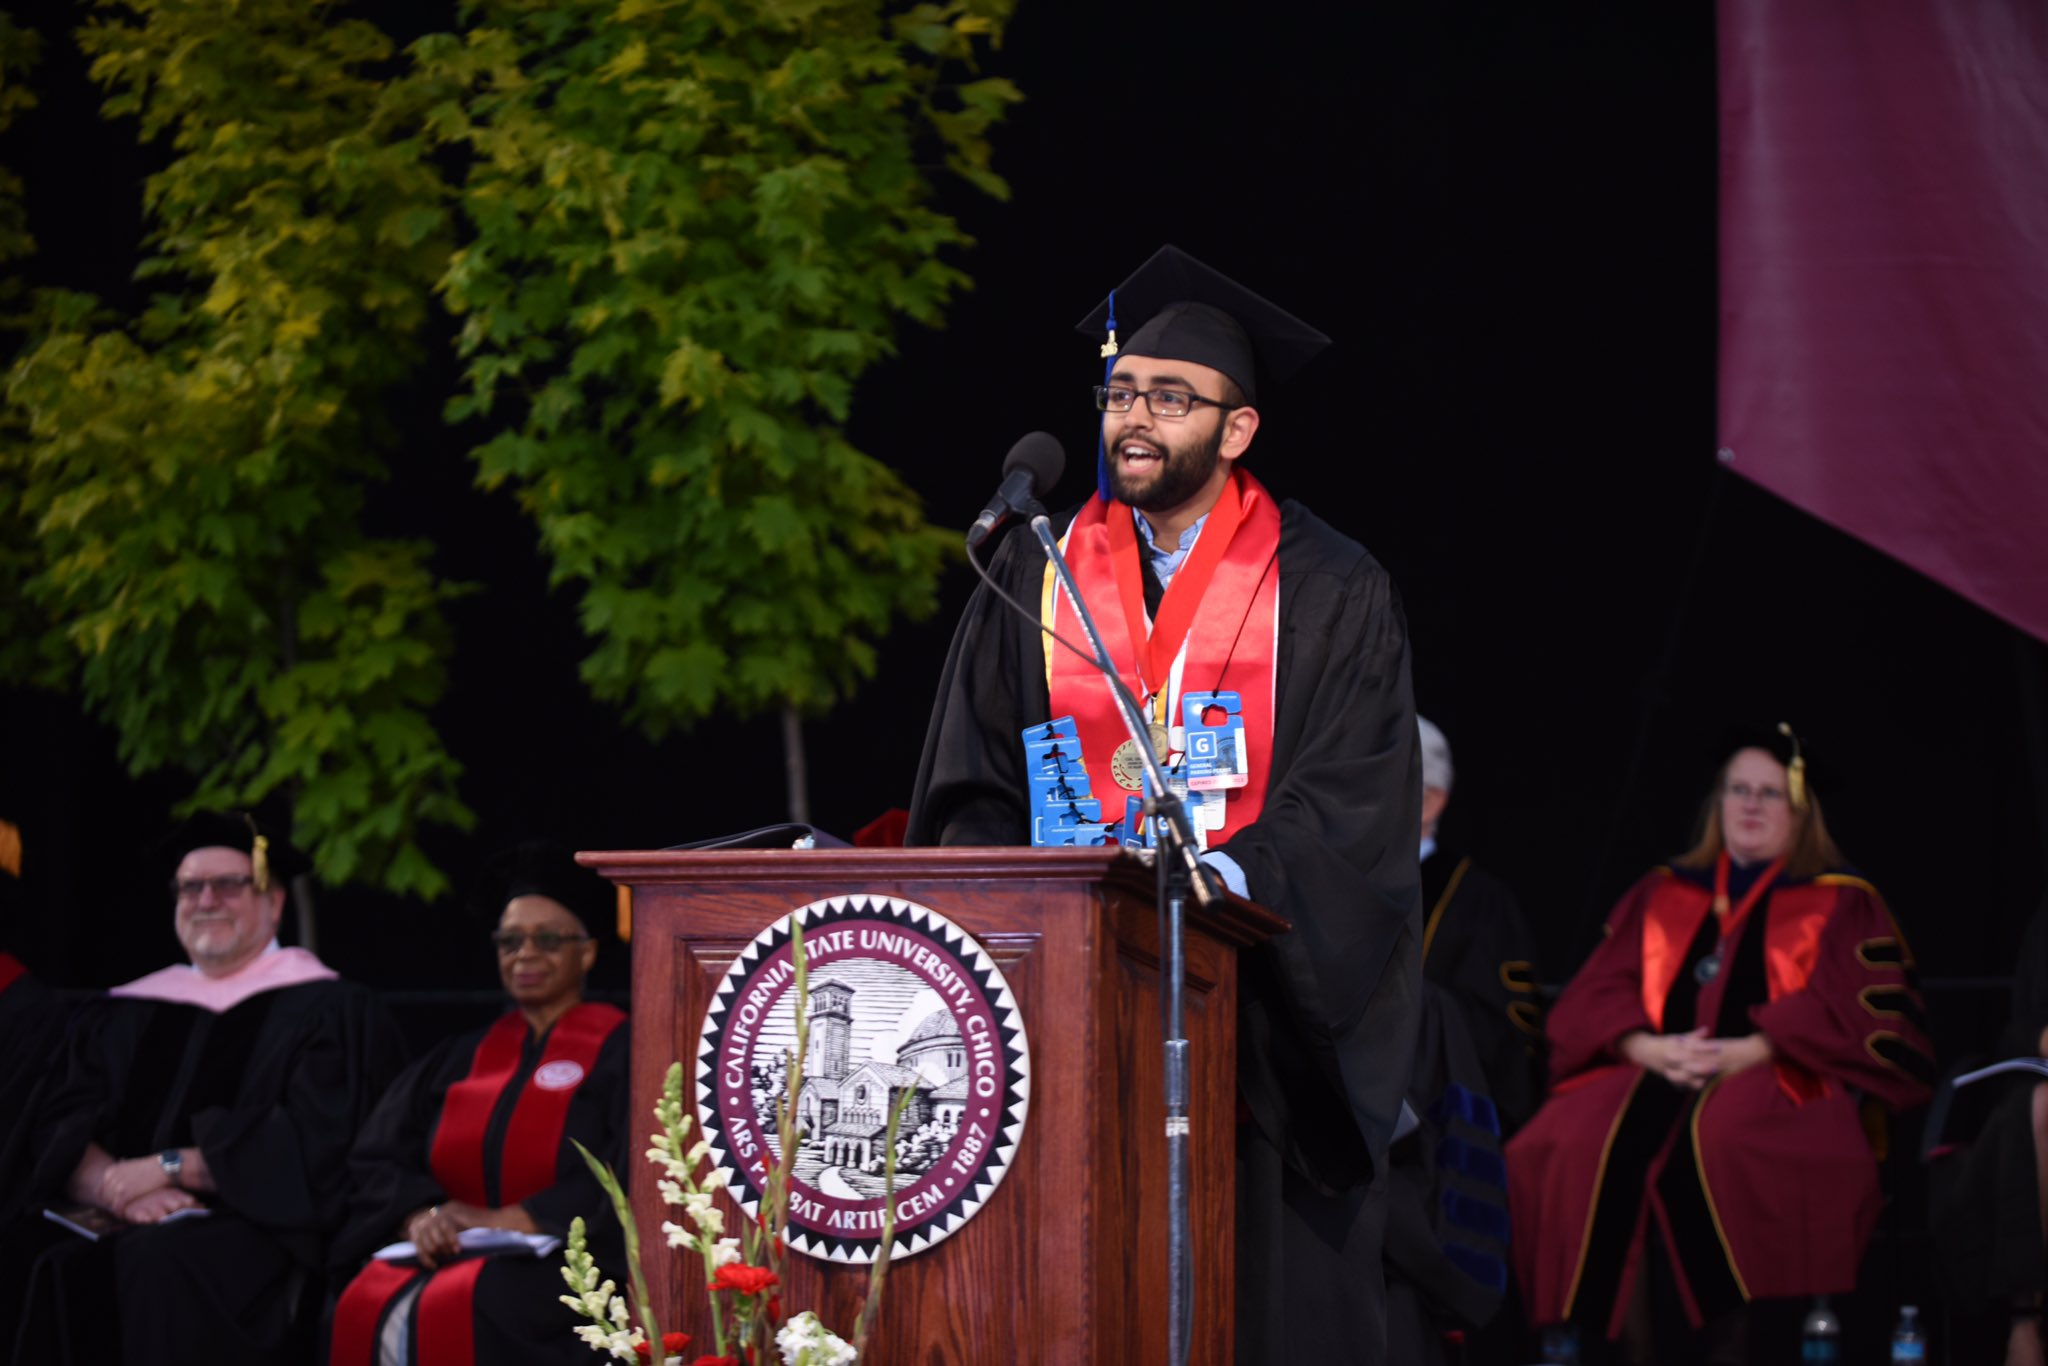 Draw upon your past experiences & trust you will end up where you need to be in the future.—Manvir Chahal #chico2016 https://t.co/uodGYthHAW